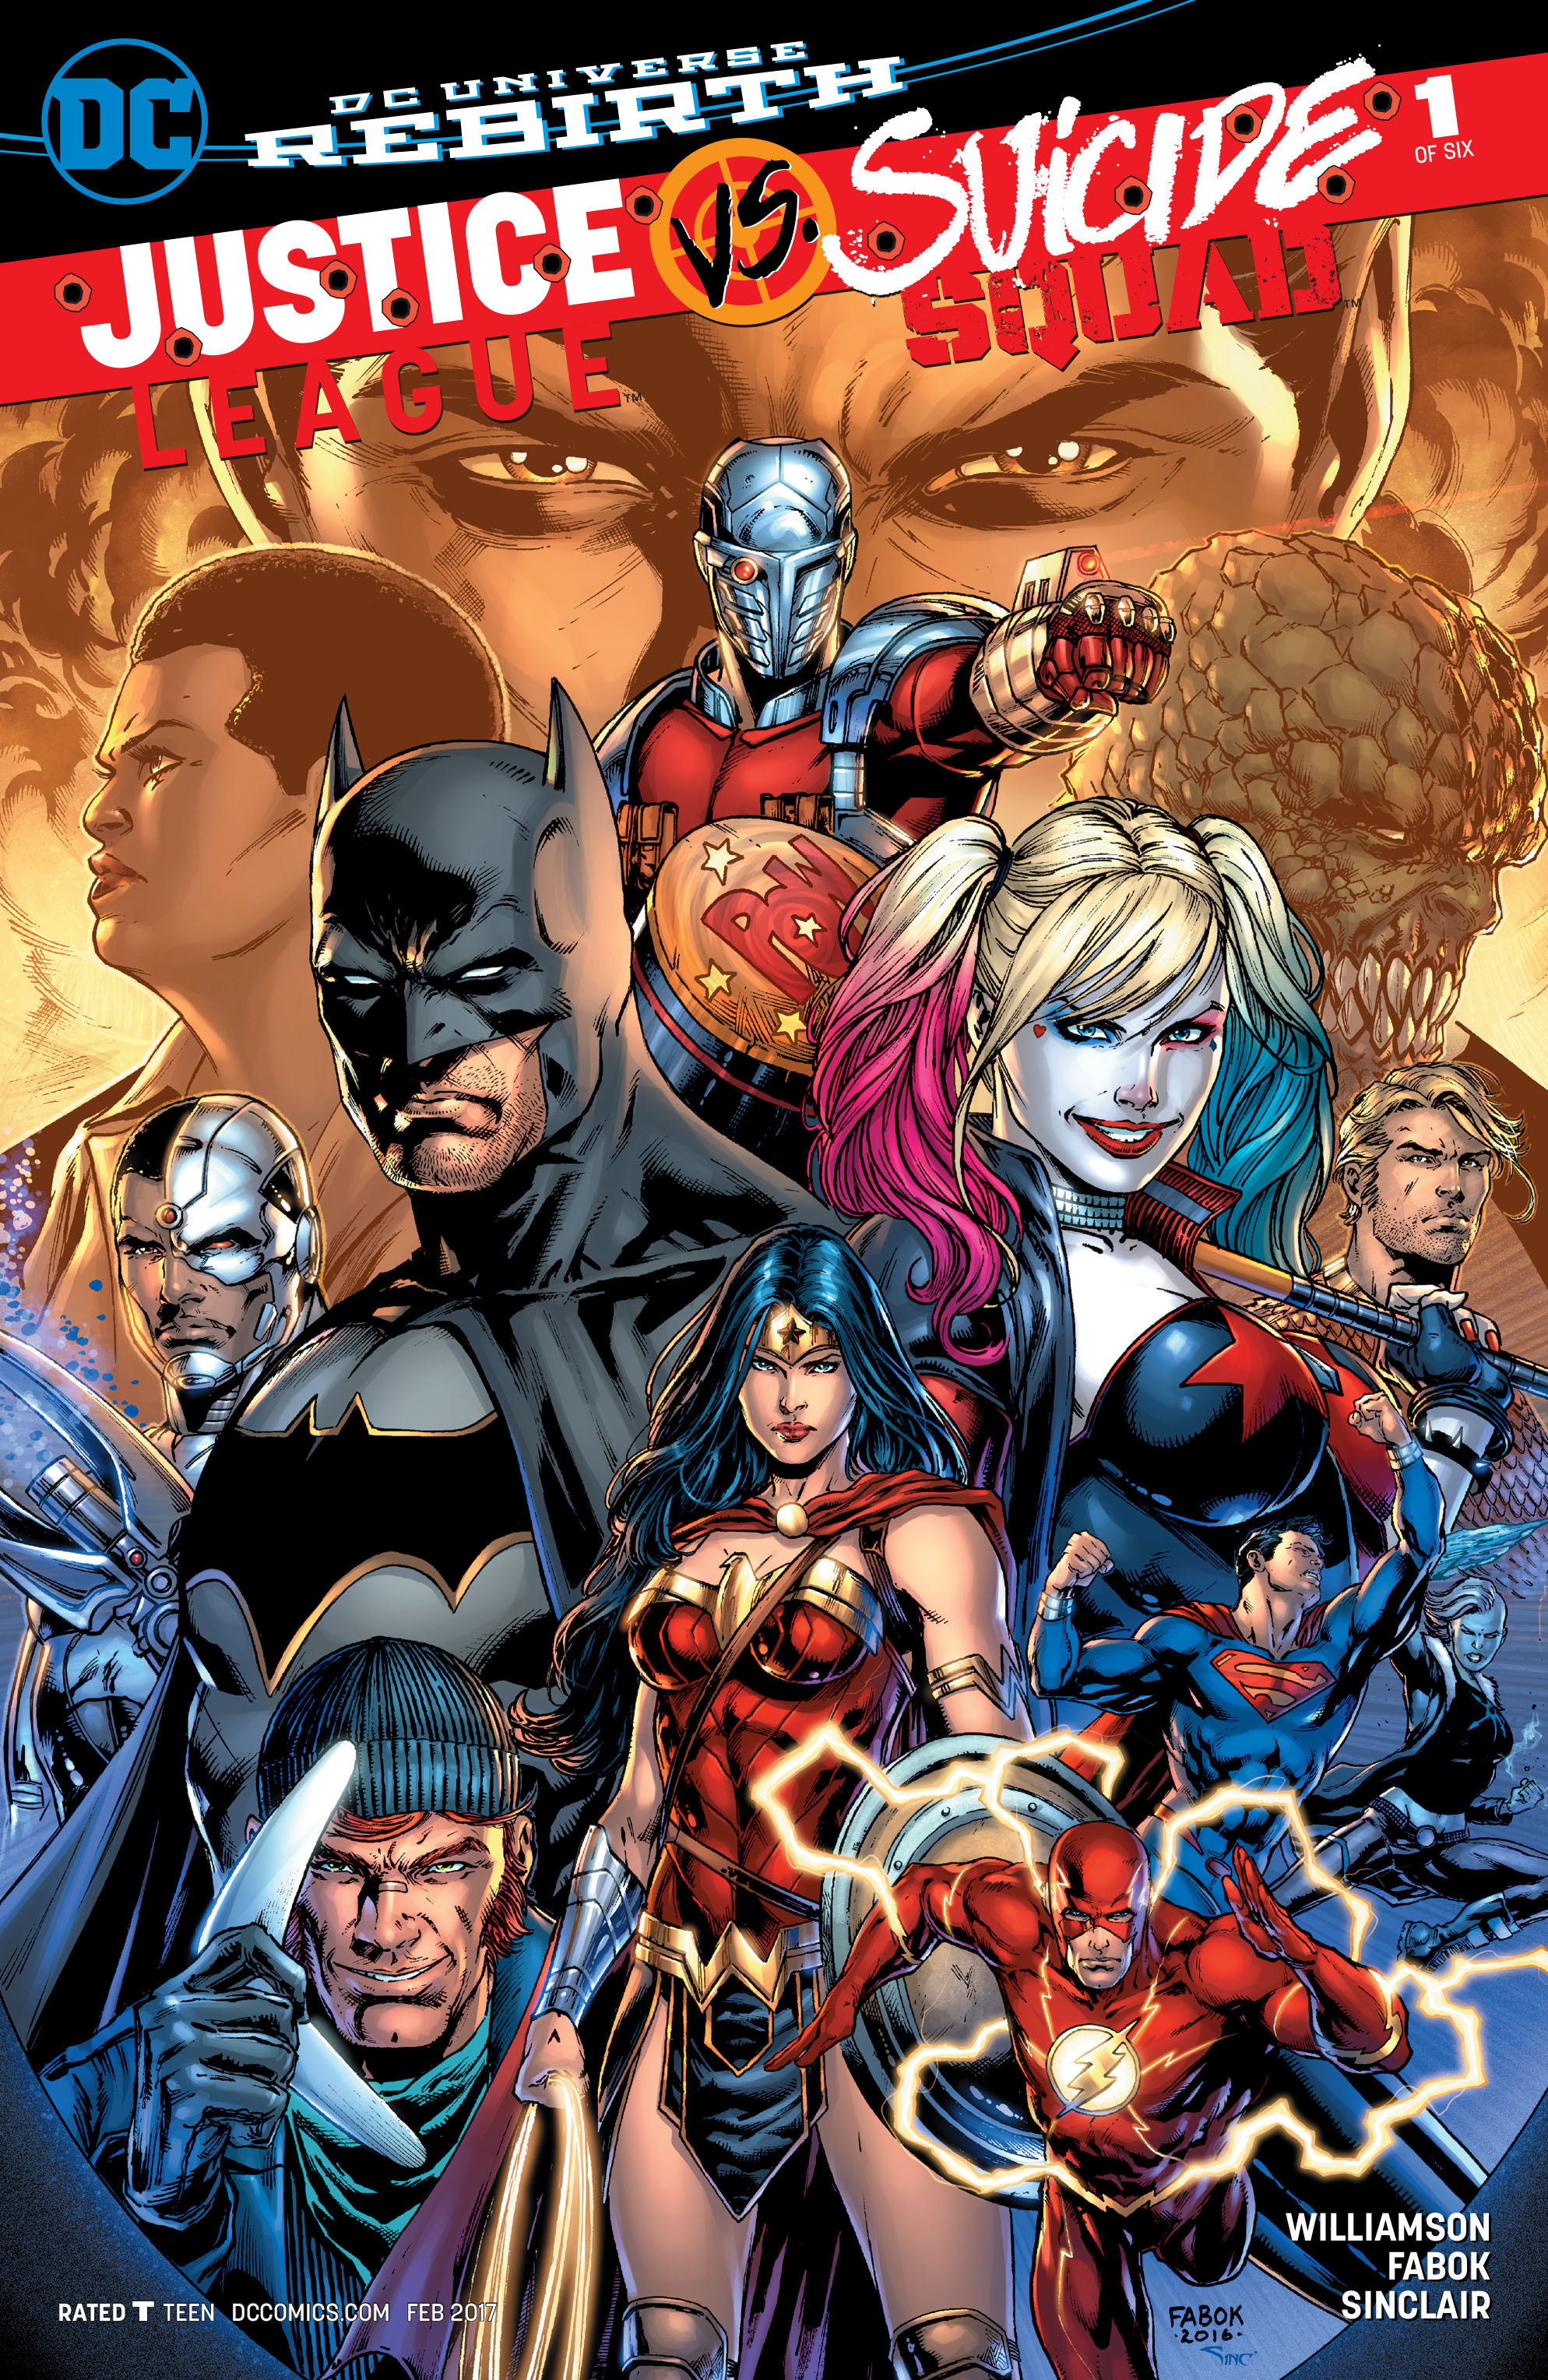 Justice league vs suicide squadcovers dc database fandom justice league vs suicide squadcovers dc database fandom powered by wikia stopboris Images